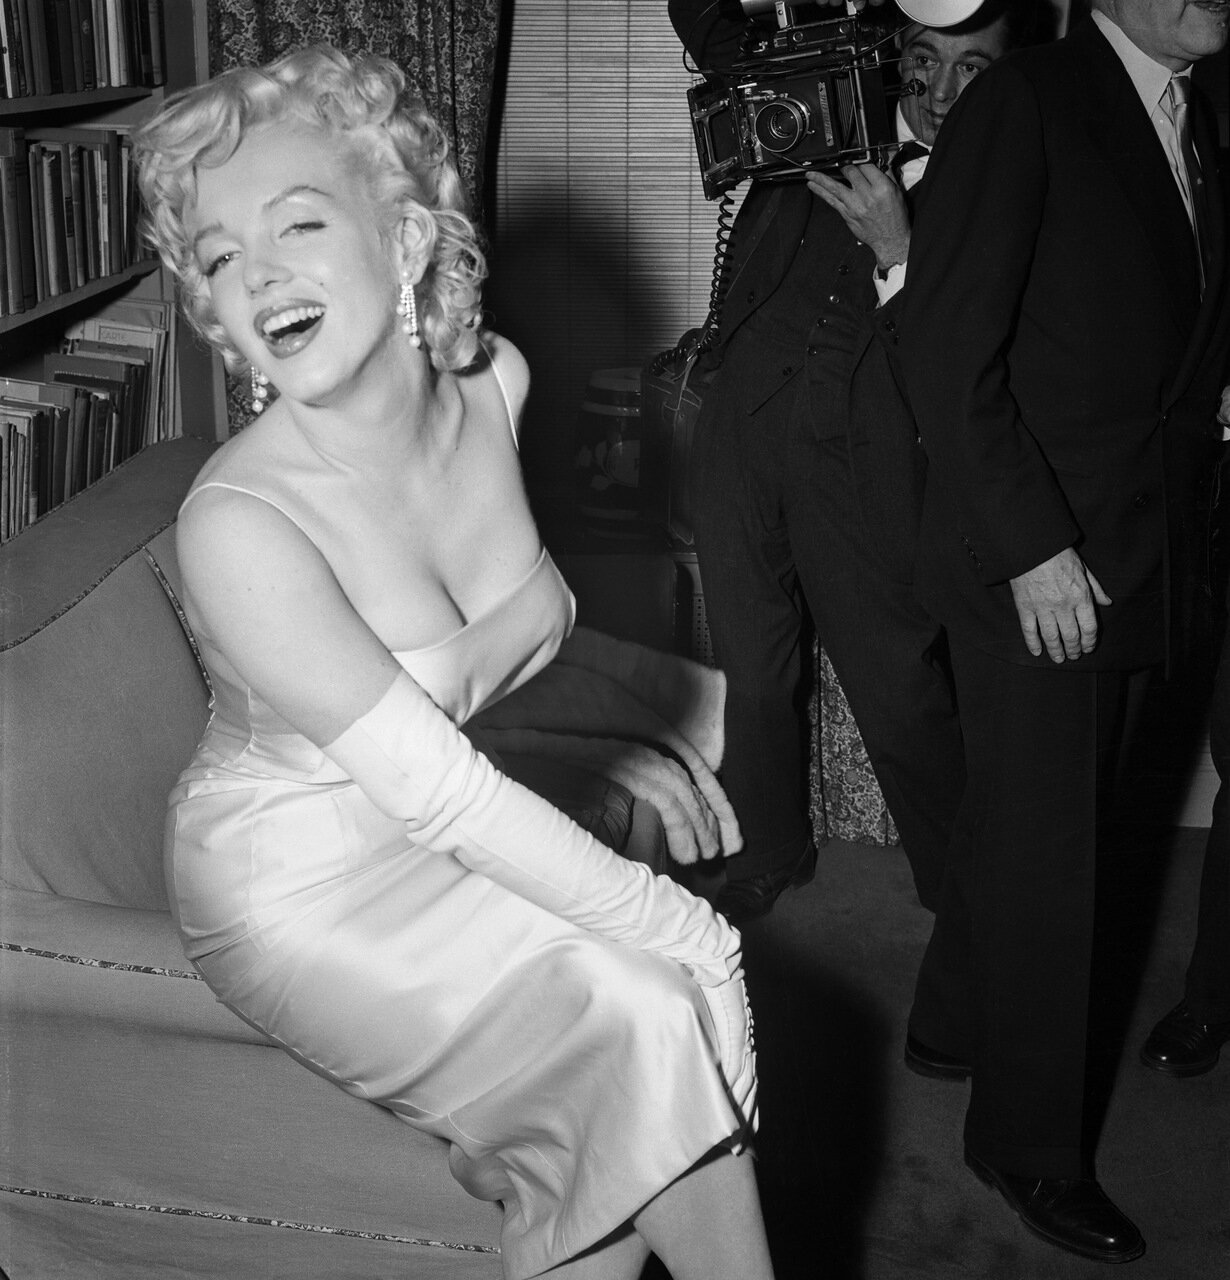 Marilyn Monroe Posing for a Photographer